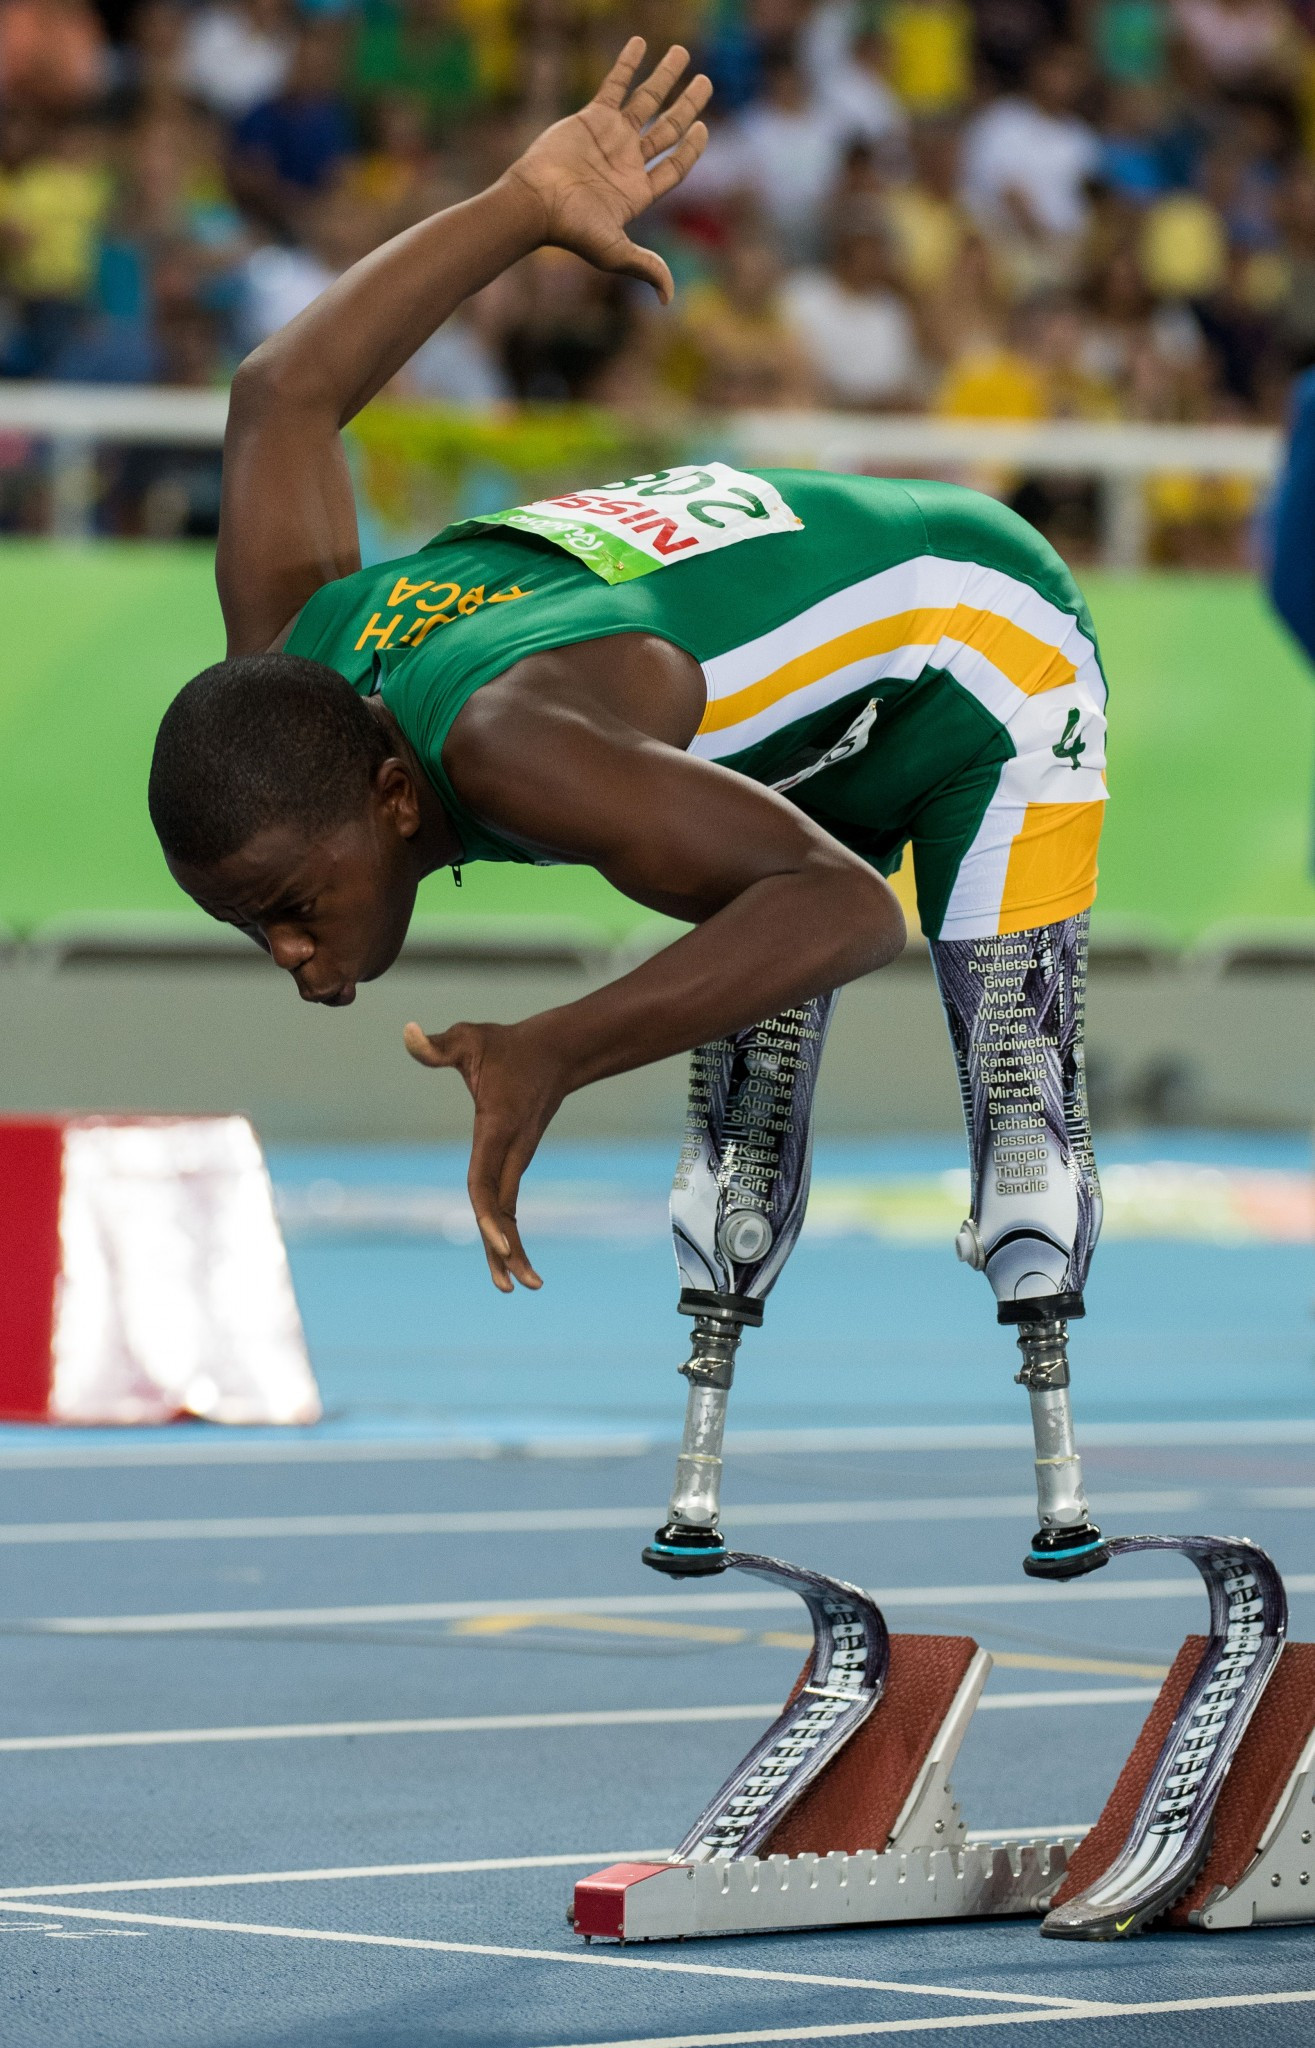 Rio 2016 silver medallist Mahlangu among leading names set to compete at World Para Athletics Junior Championships